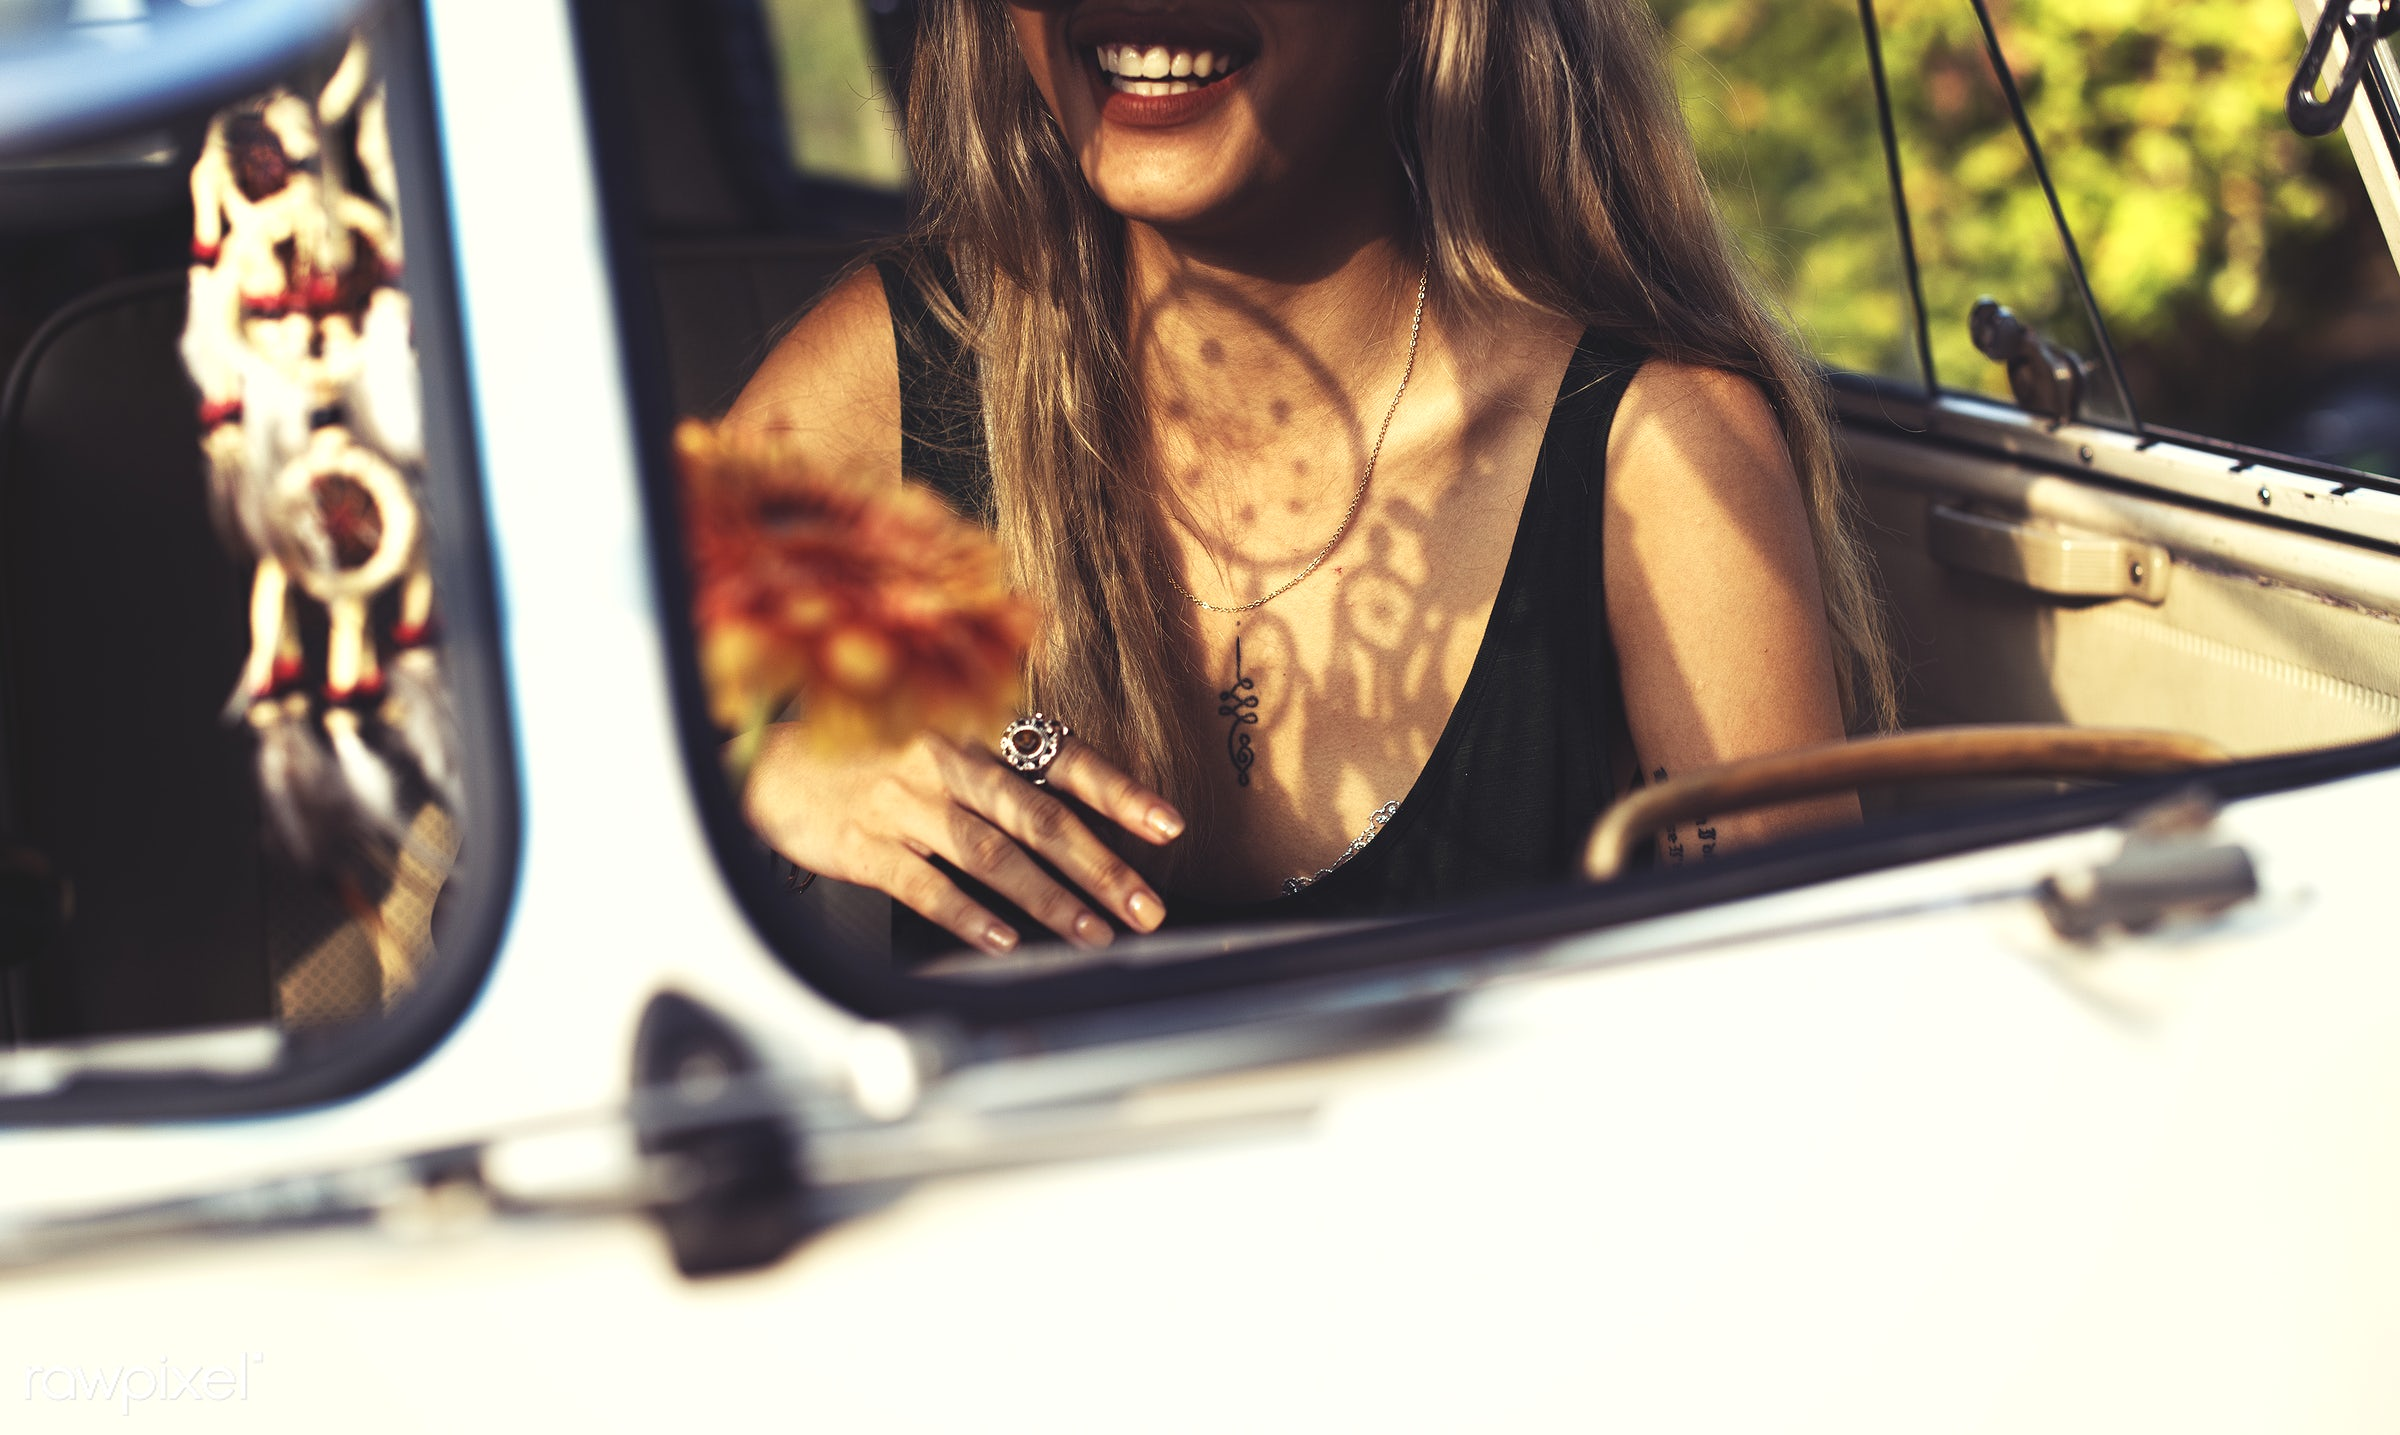 adult, adventure, attractive, beauty, car, dreamcatcher, female, hippy, hipster, journey, joyful, leisure, life, lifestyle,...